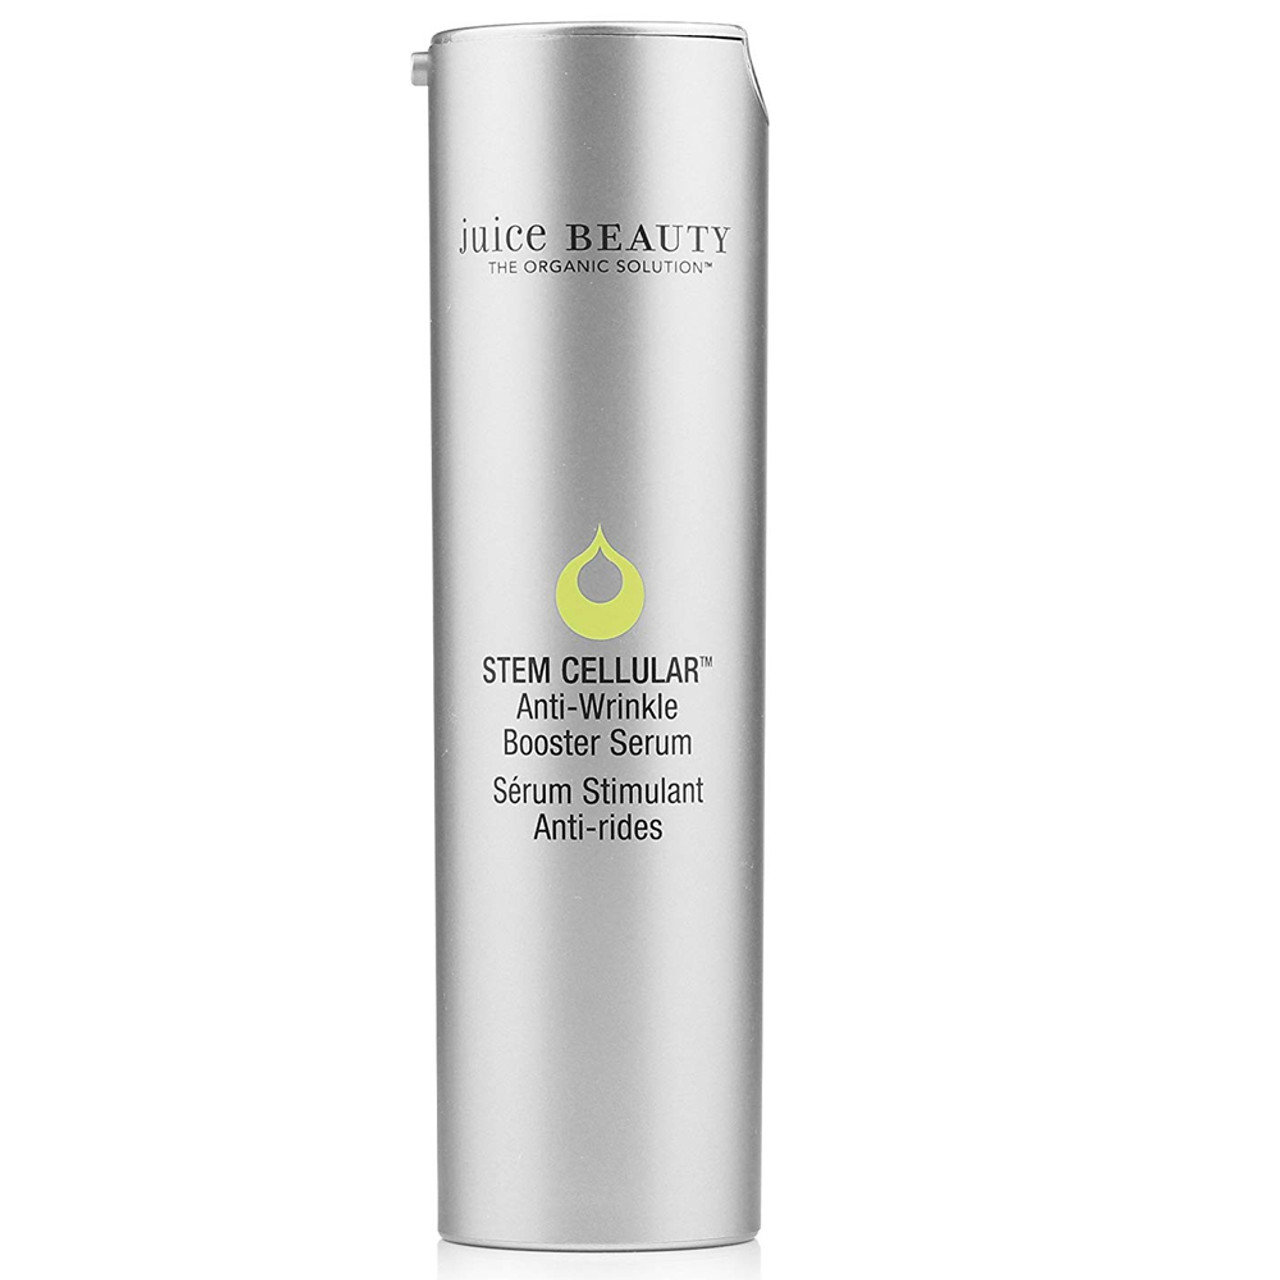 Juice Beauty Cellular Booster Serum